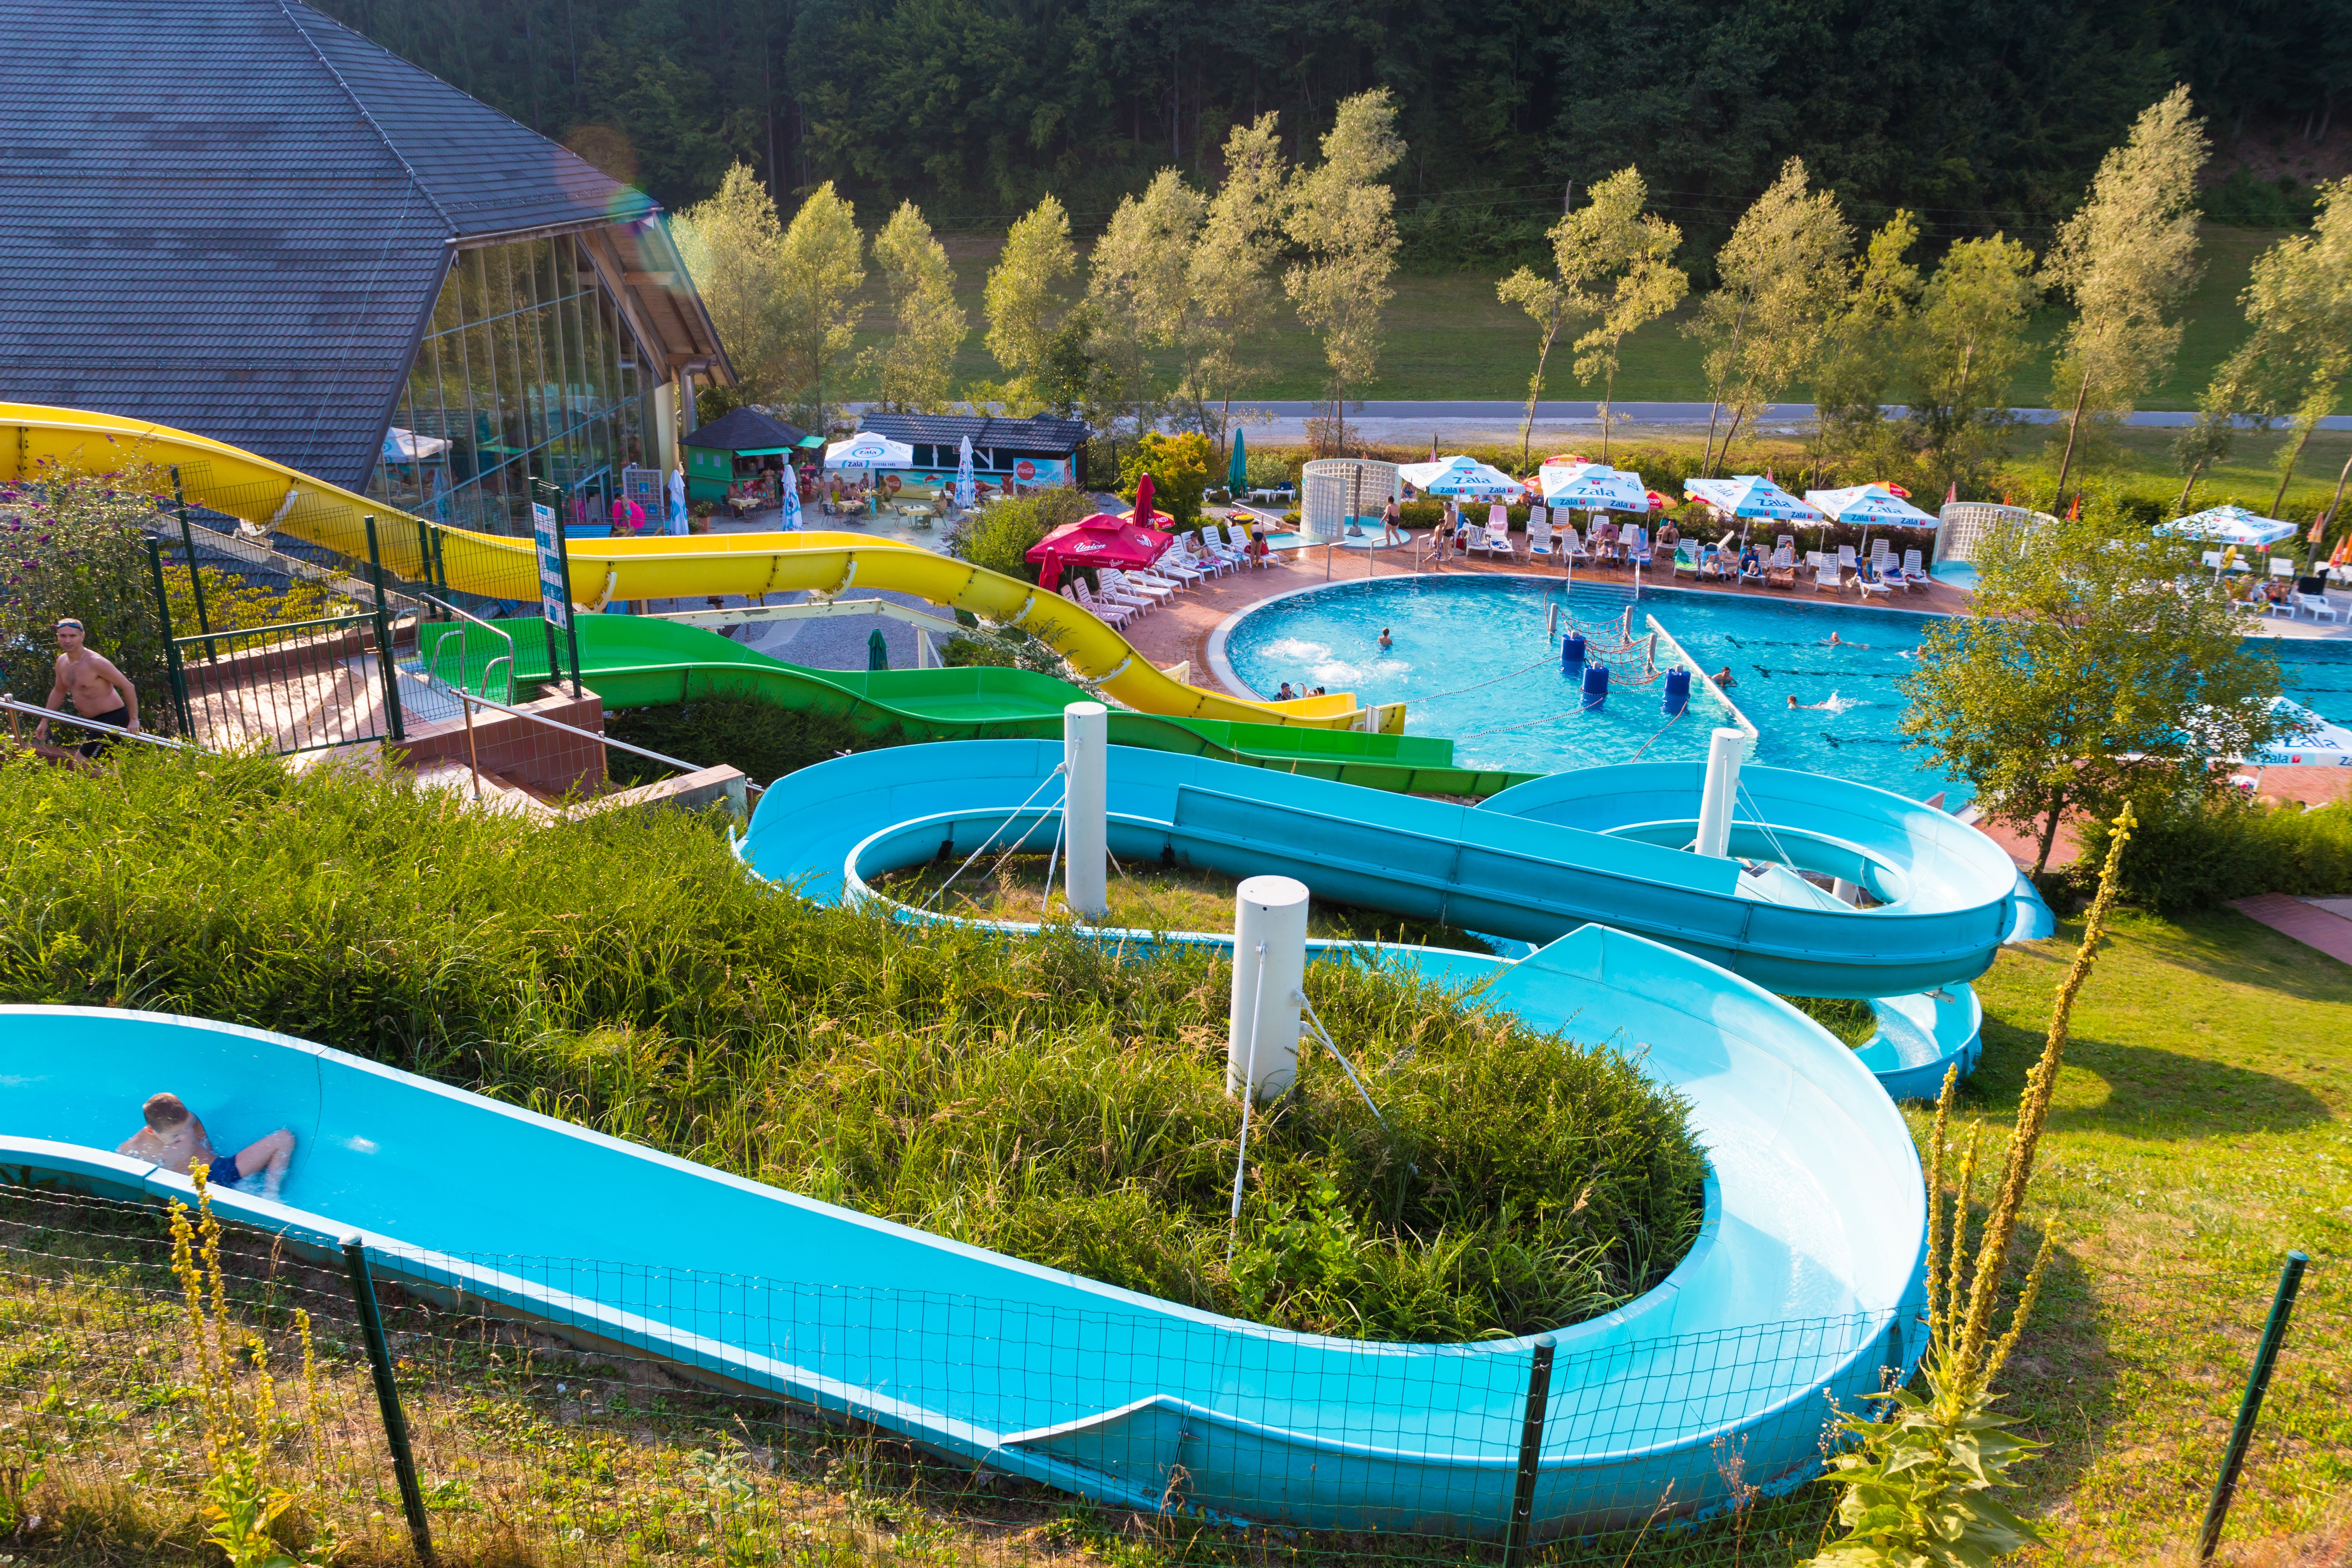 Outdoor swimming pool - slides 4